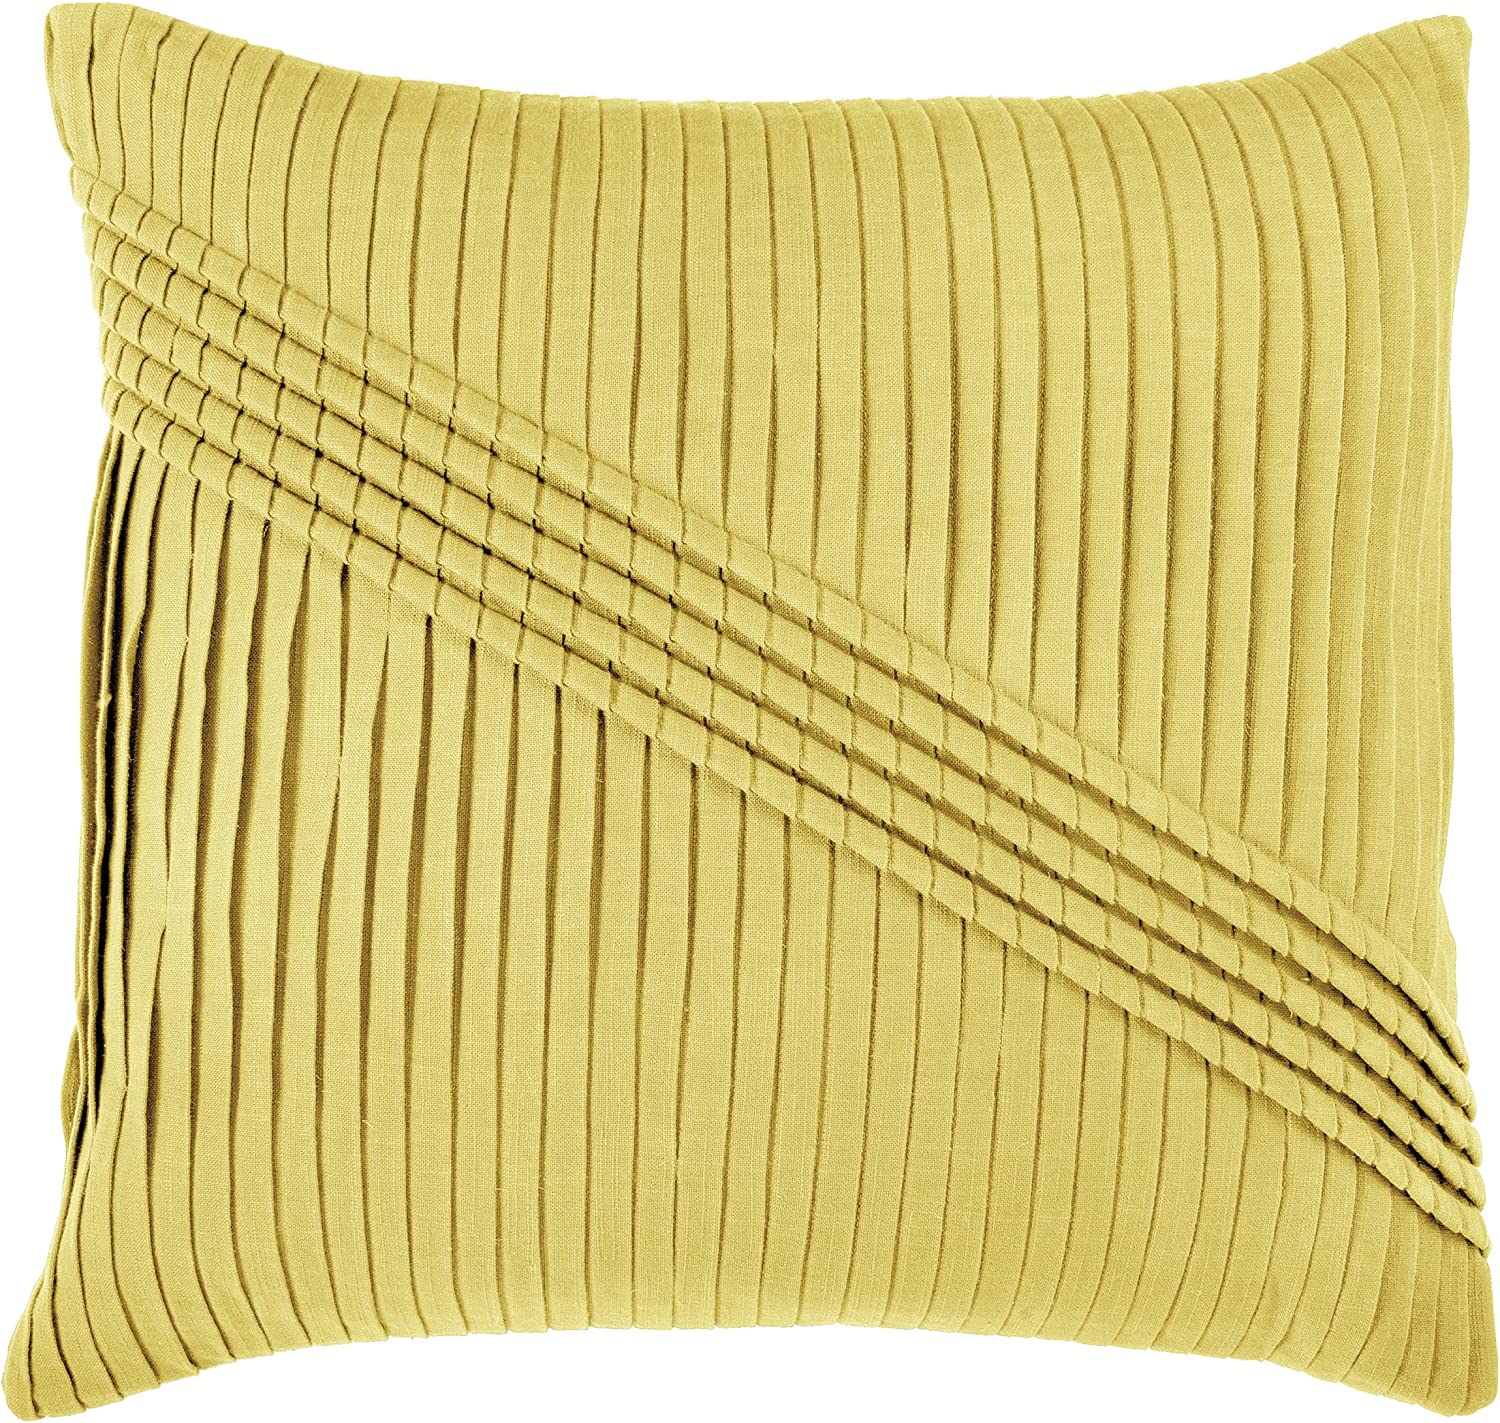 Rizzy Home T06791 Decorative Pillow, 22